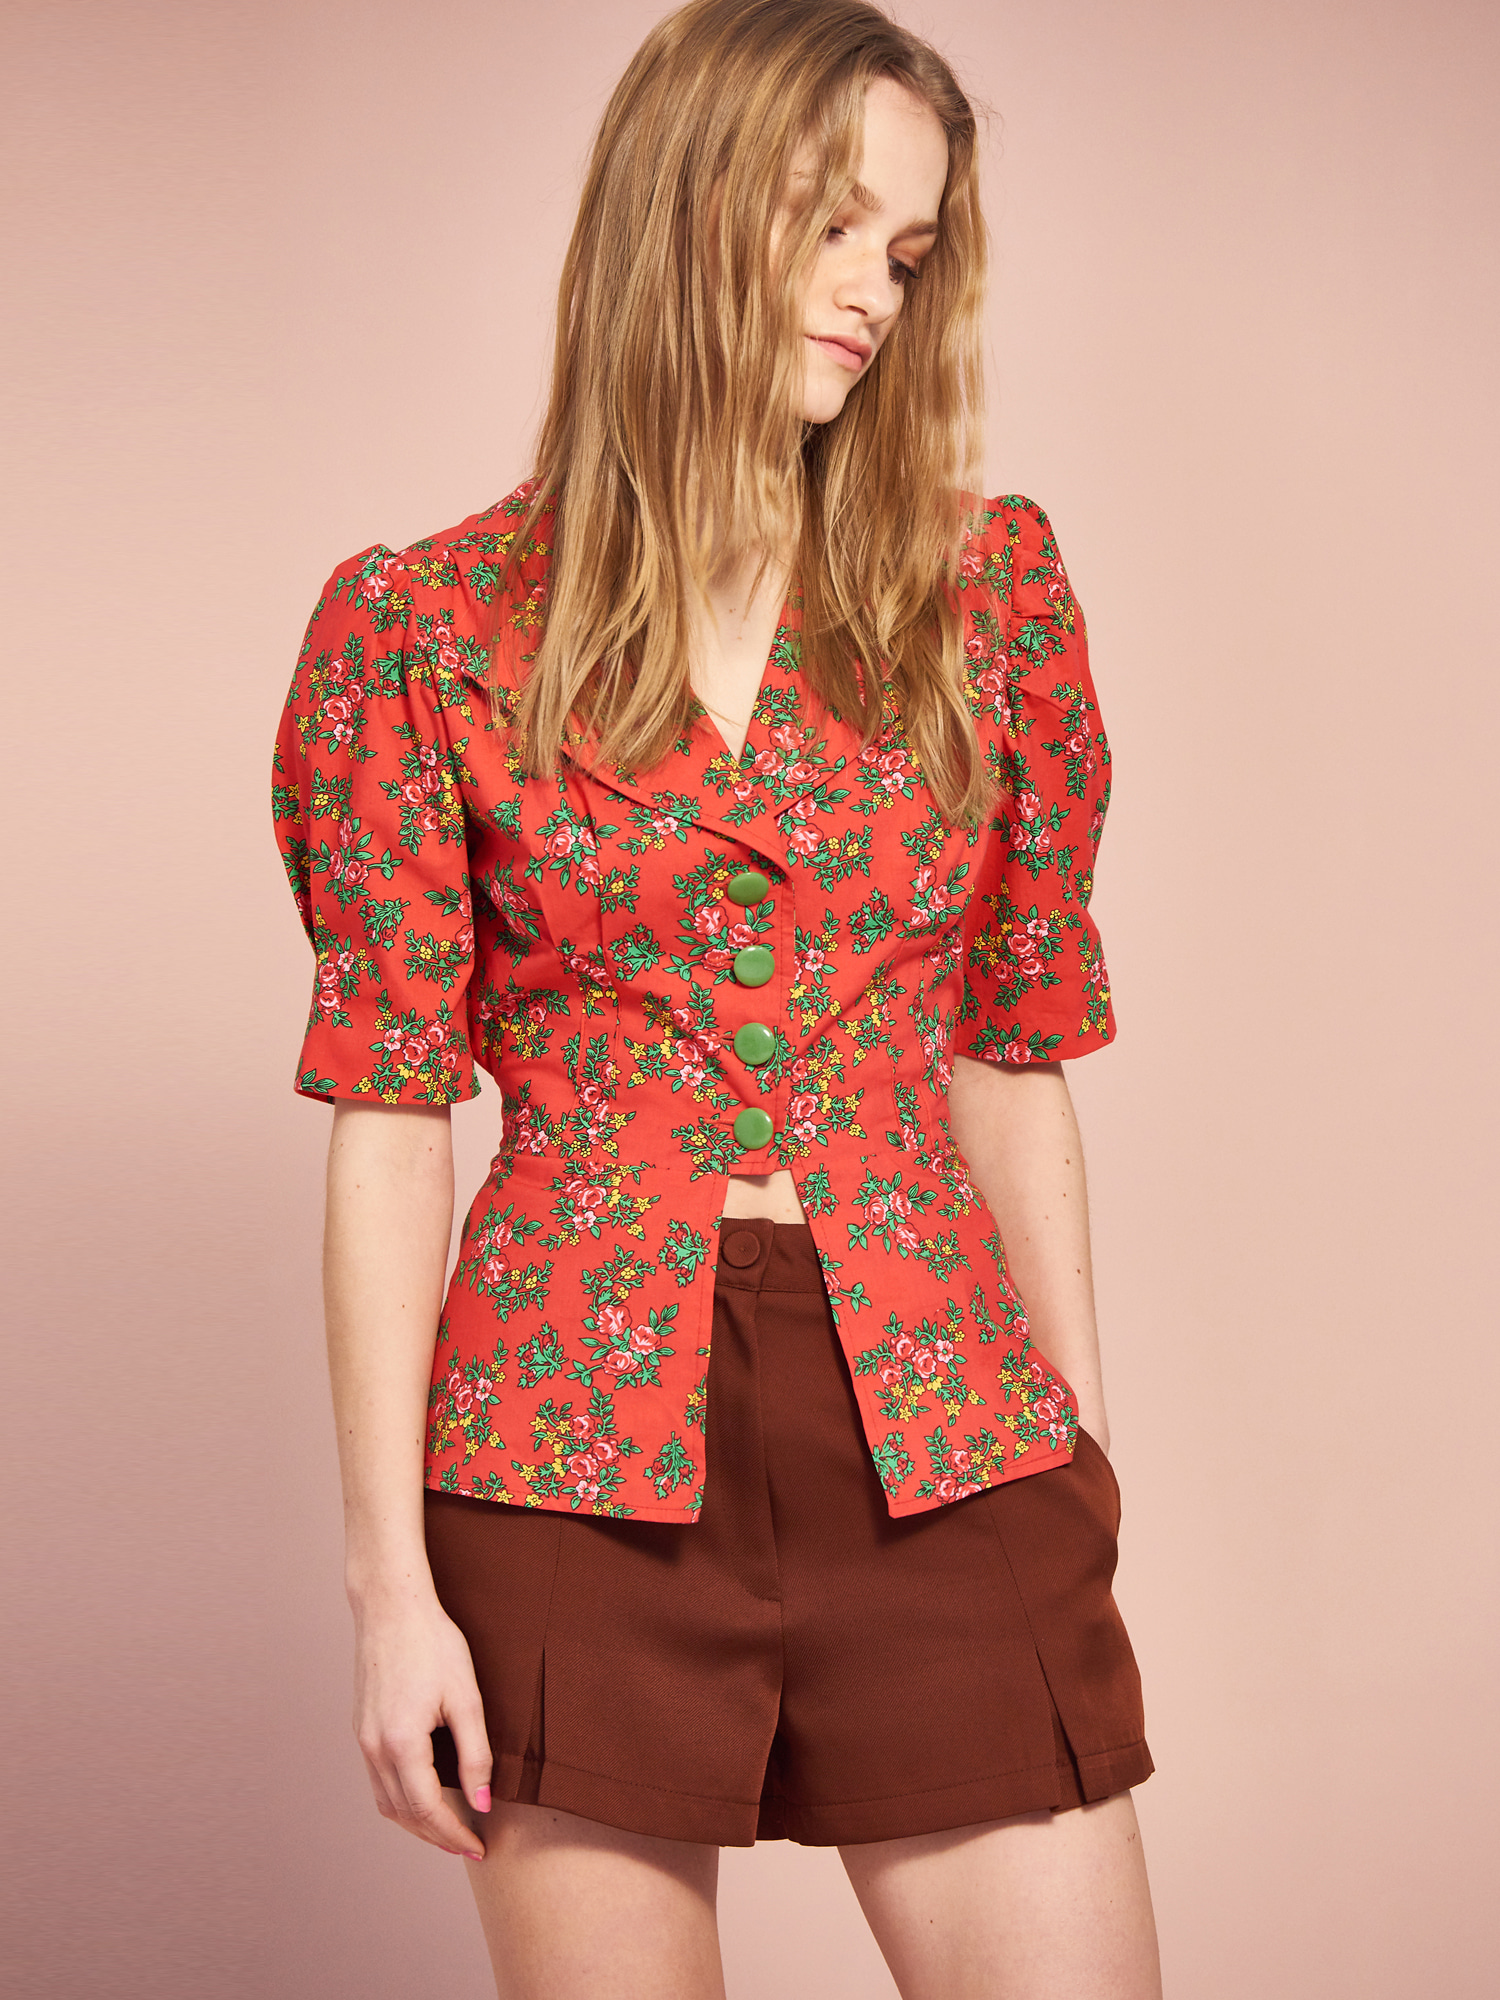 Vintage Button Blouse in Red